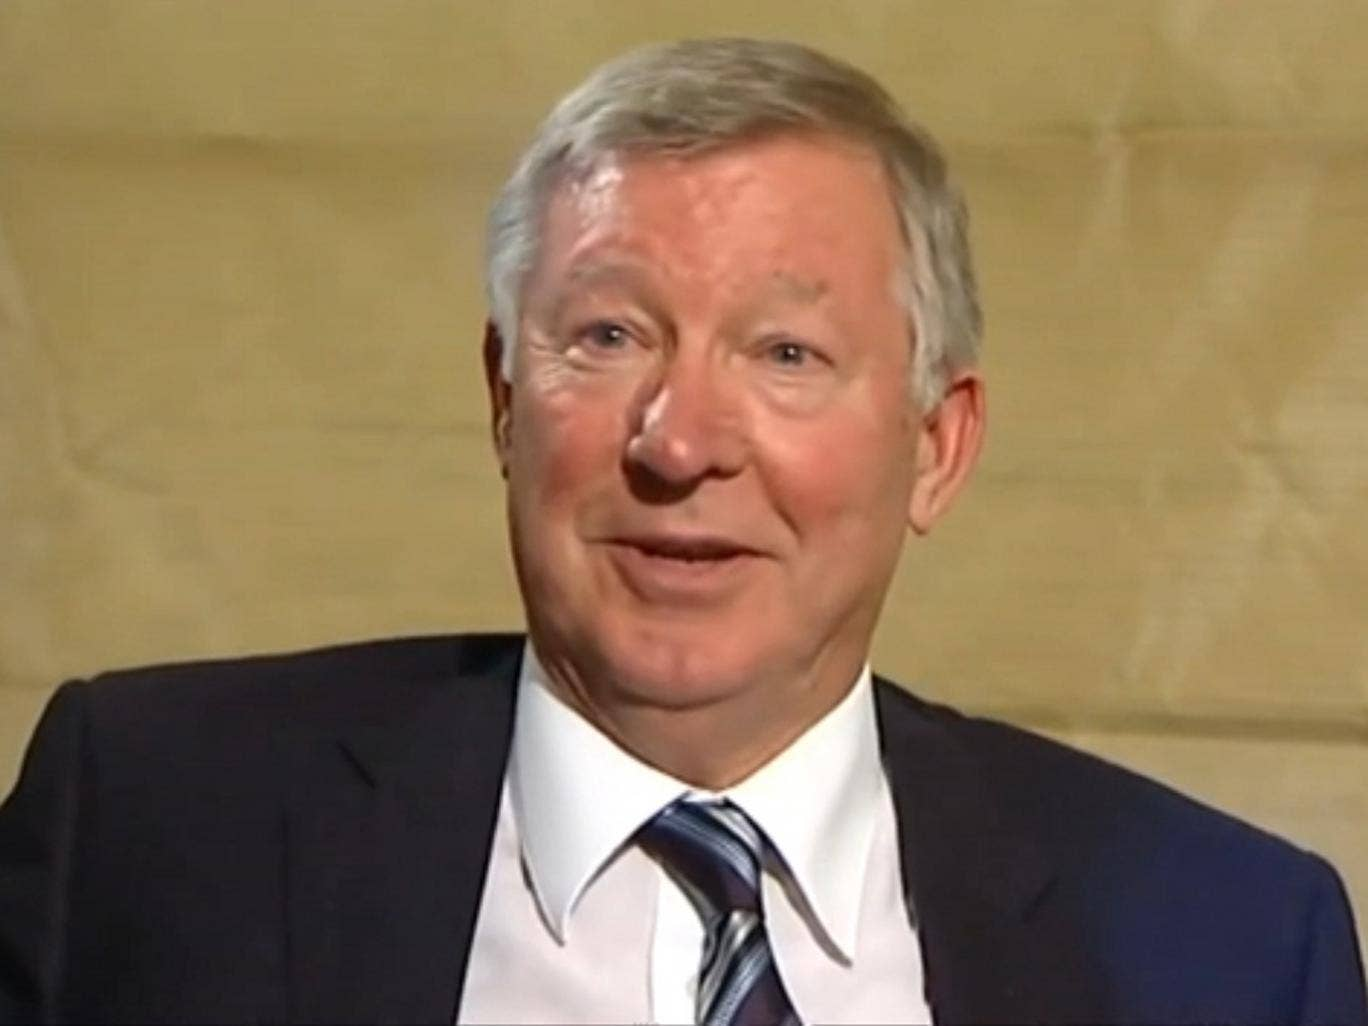 Ferguson looks bemused when asked about his political beliefs